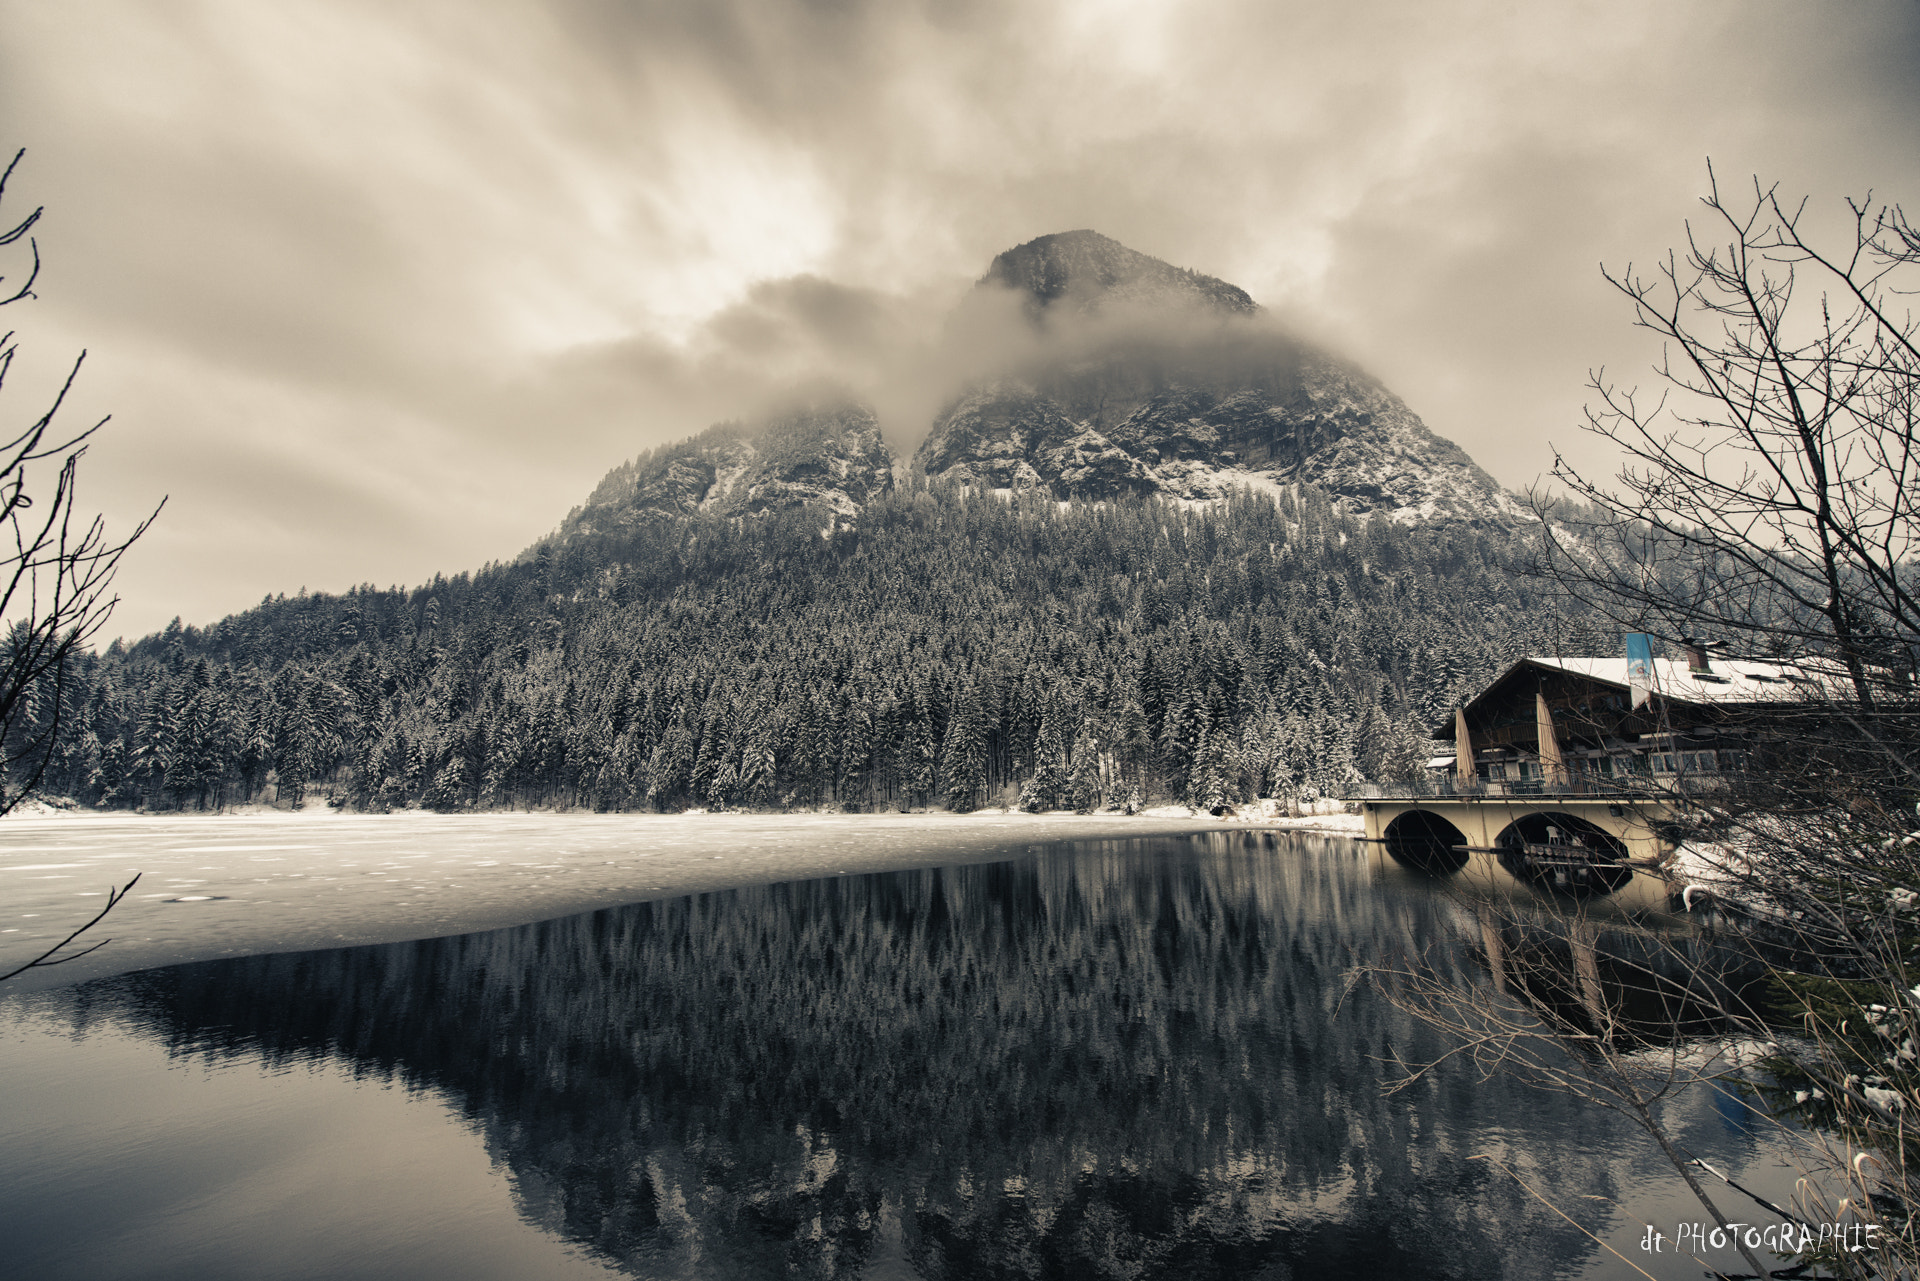 Photograph Pflegersee by Denis Thate on 500px